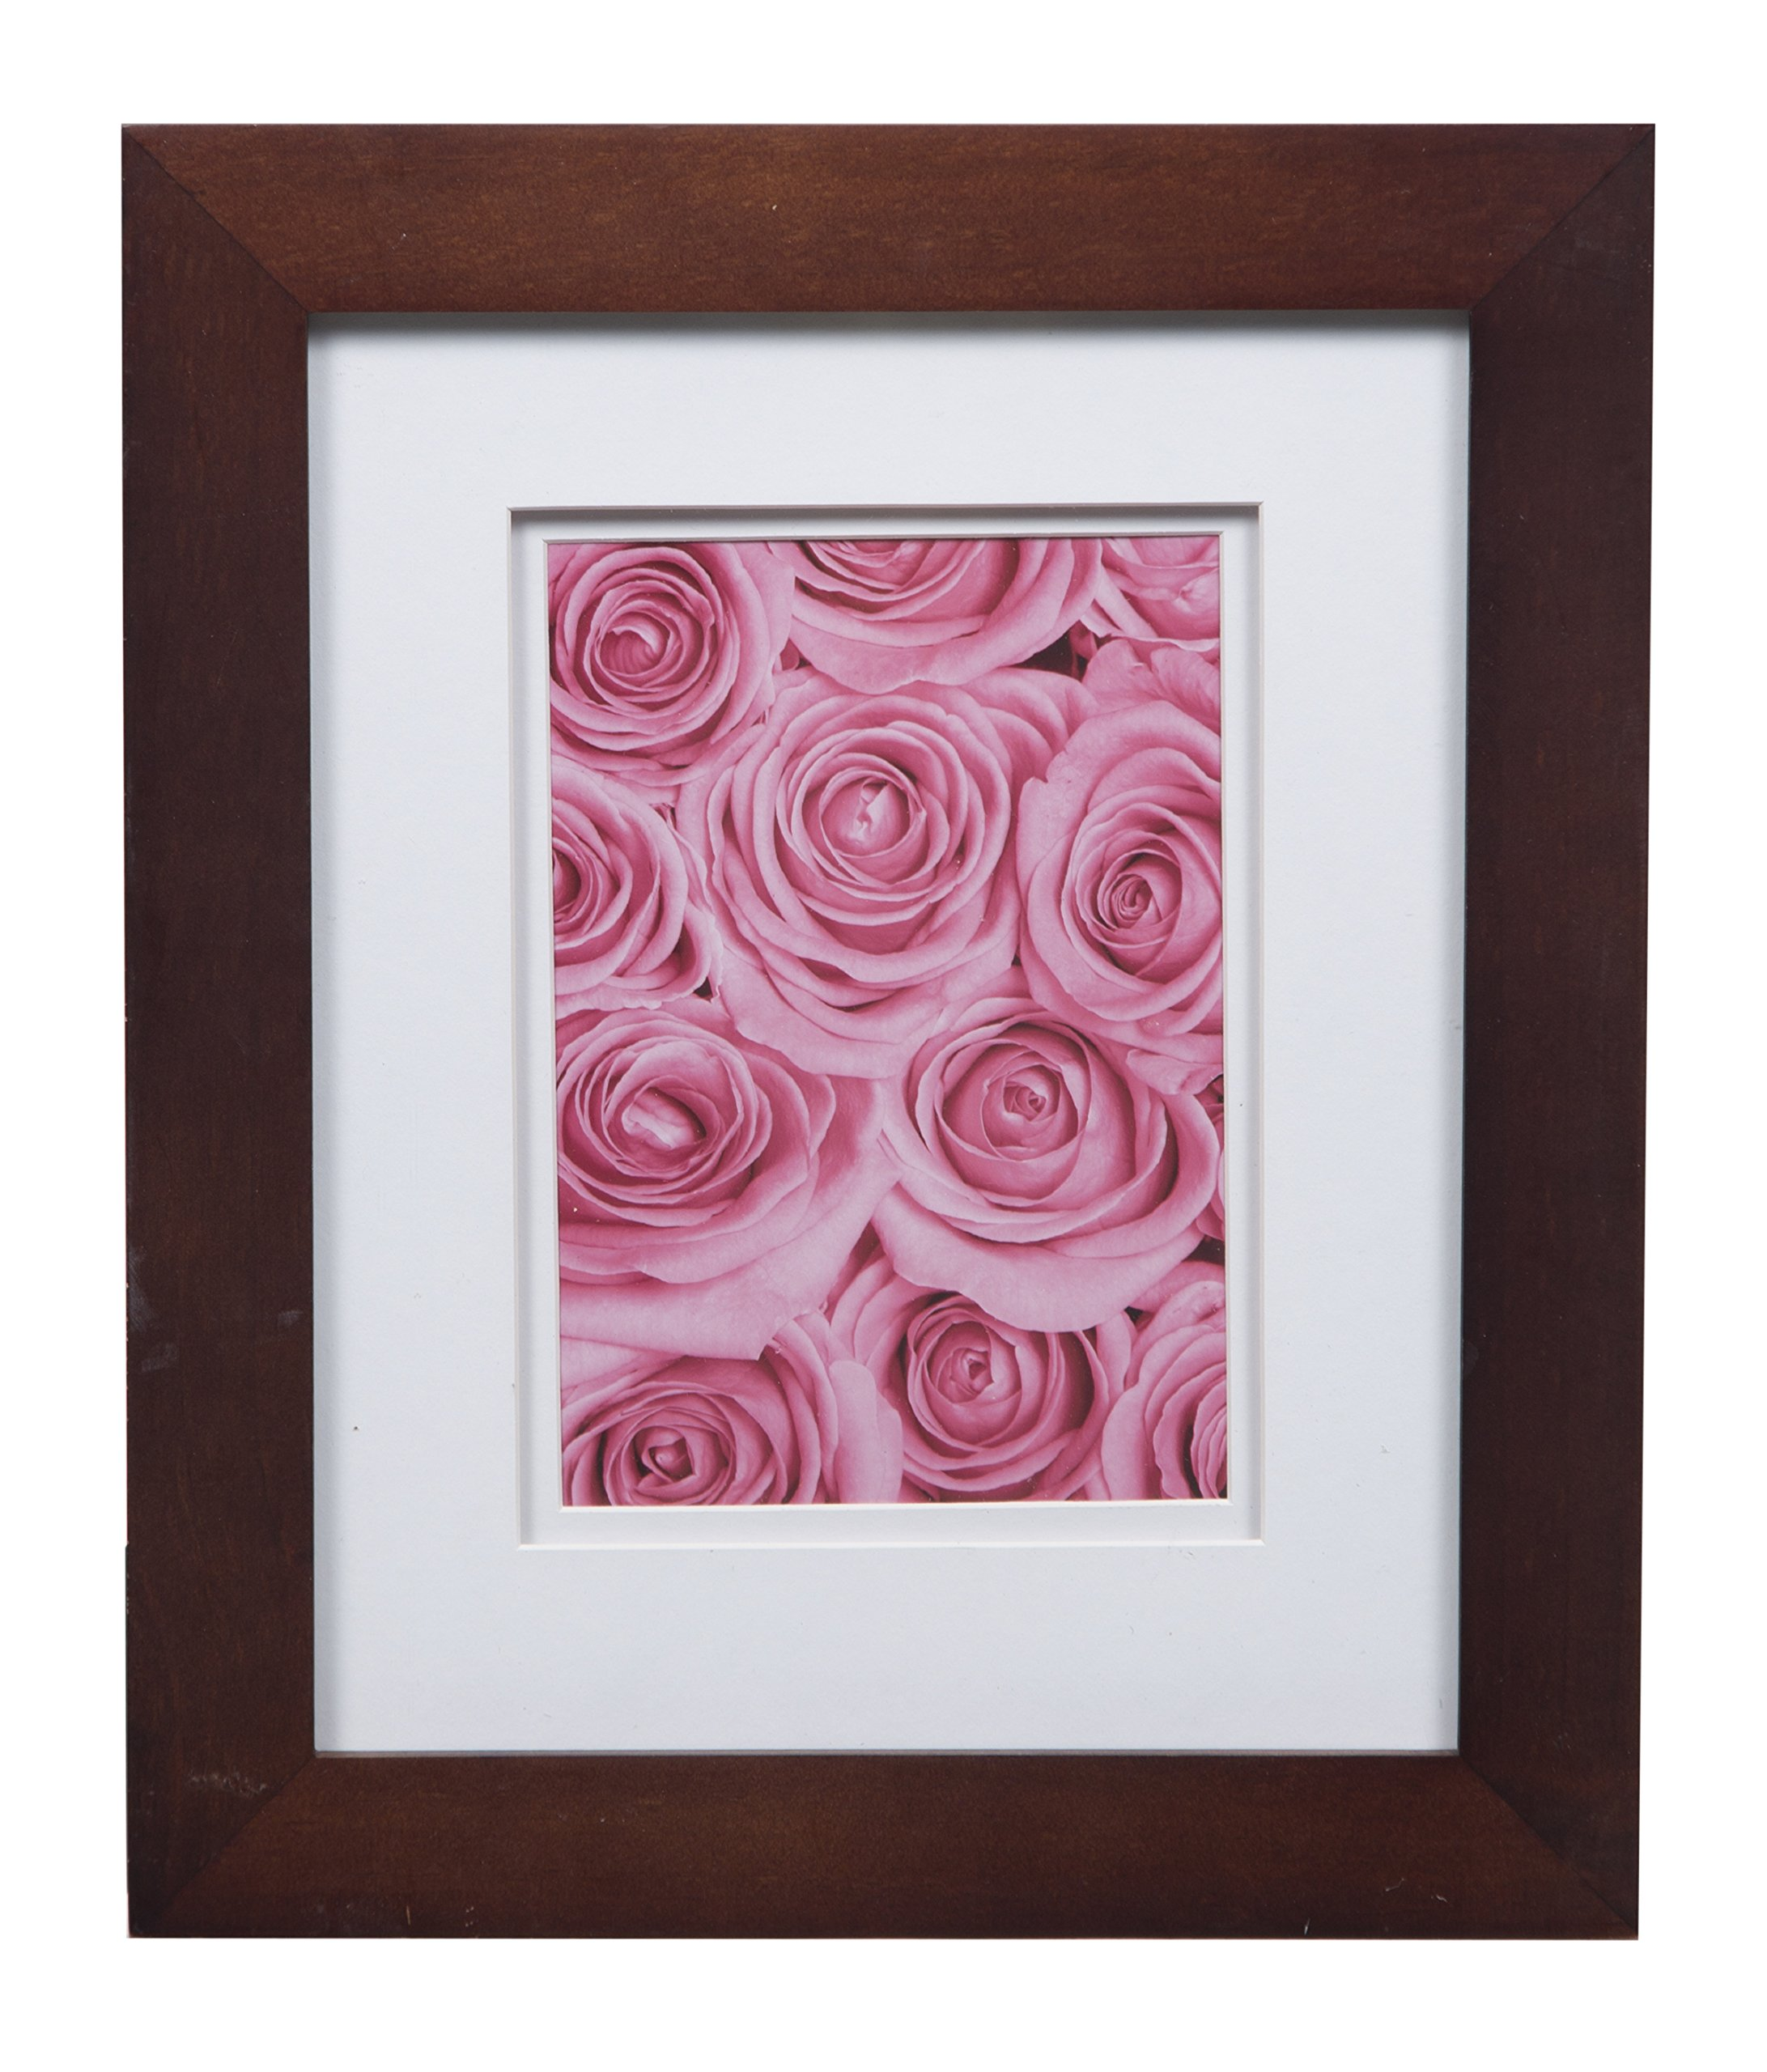 Gallery Solutions Flat Tabletop or Wall Picture White Photo 8X10 Walnut Double Frame, MATTED to 5X7, 8'' x 10'', by Gallery Solutions